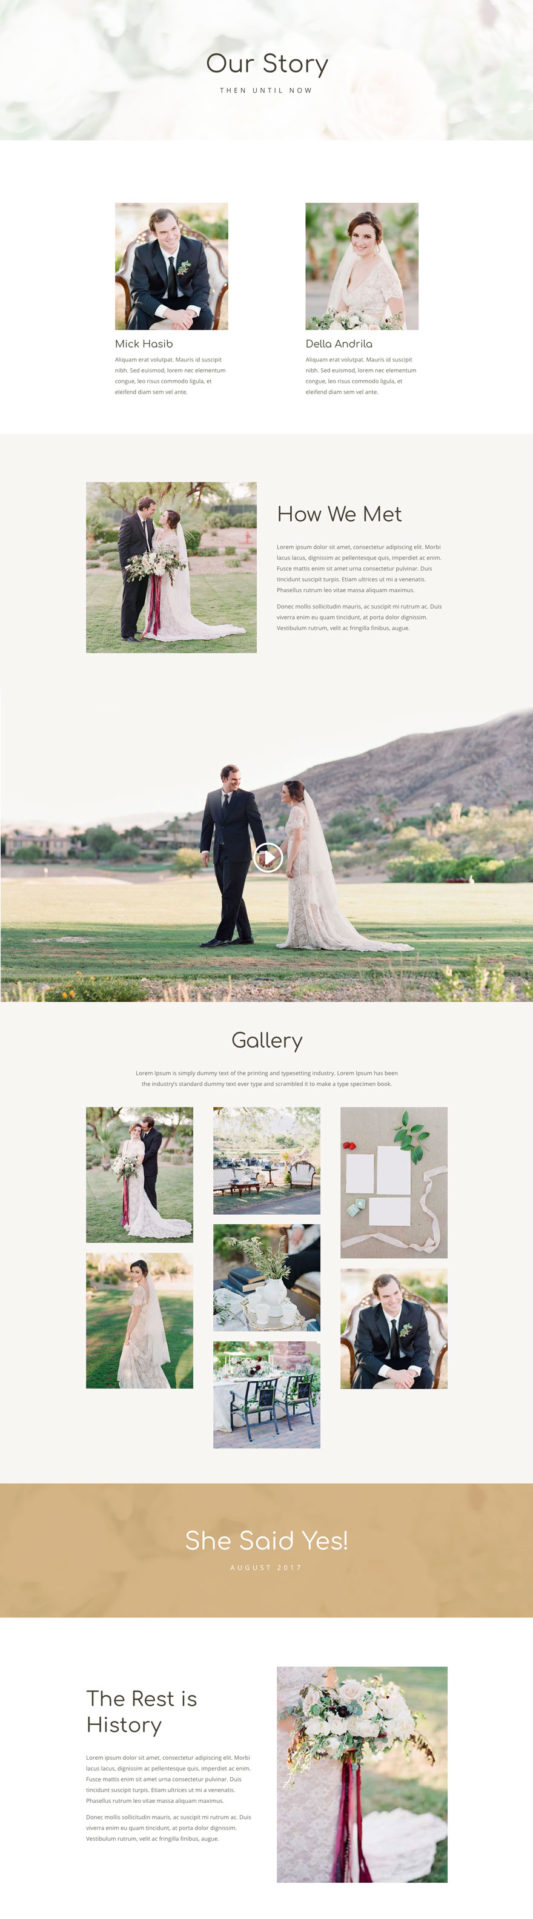 Wedding Web Design 1